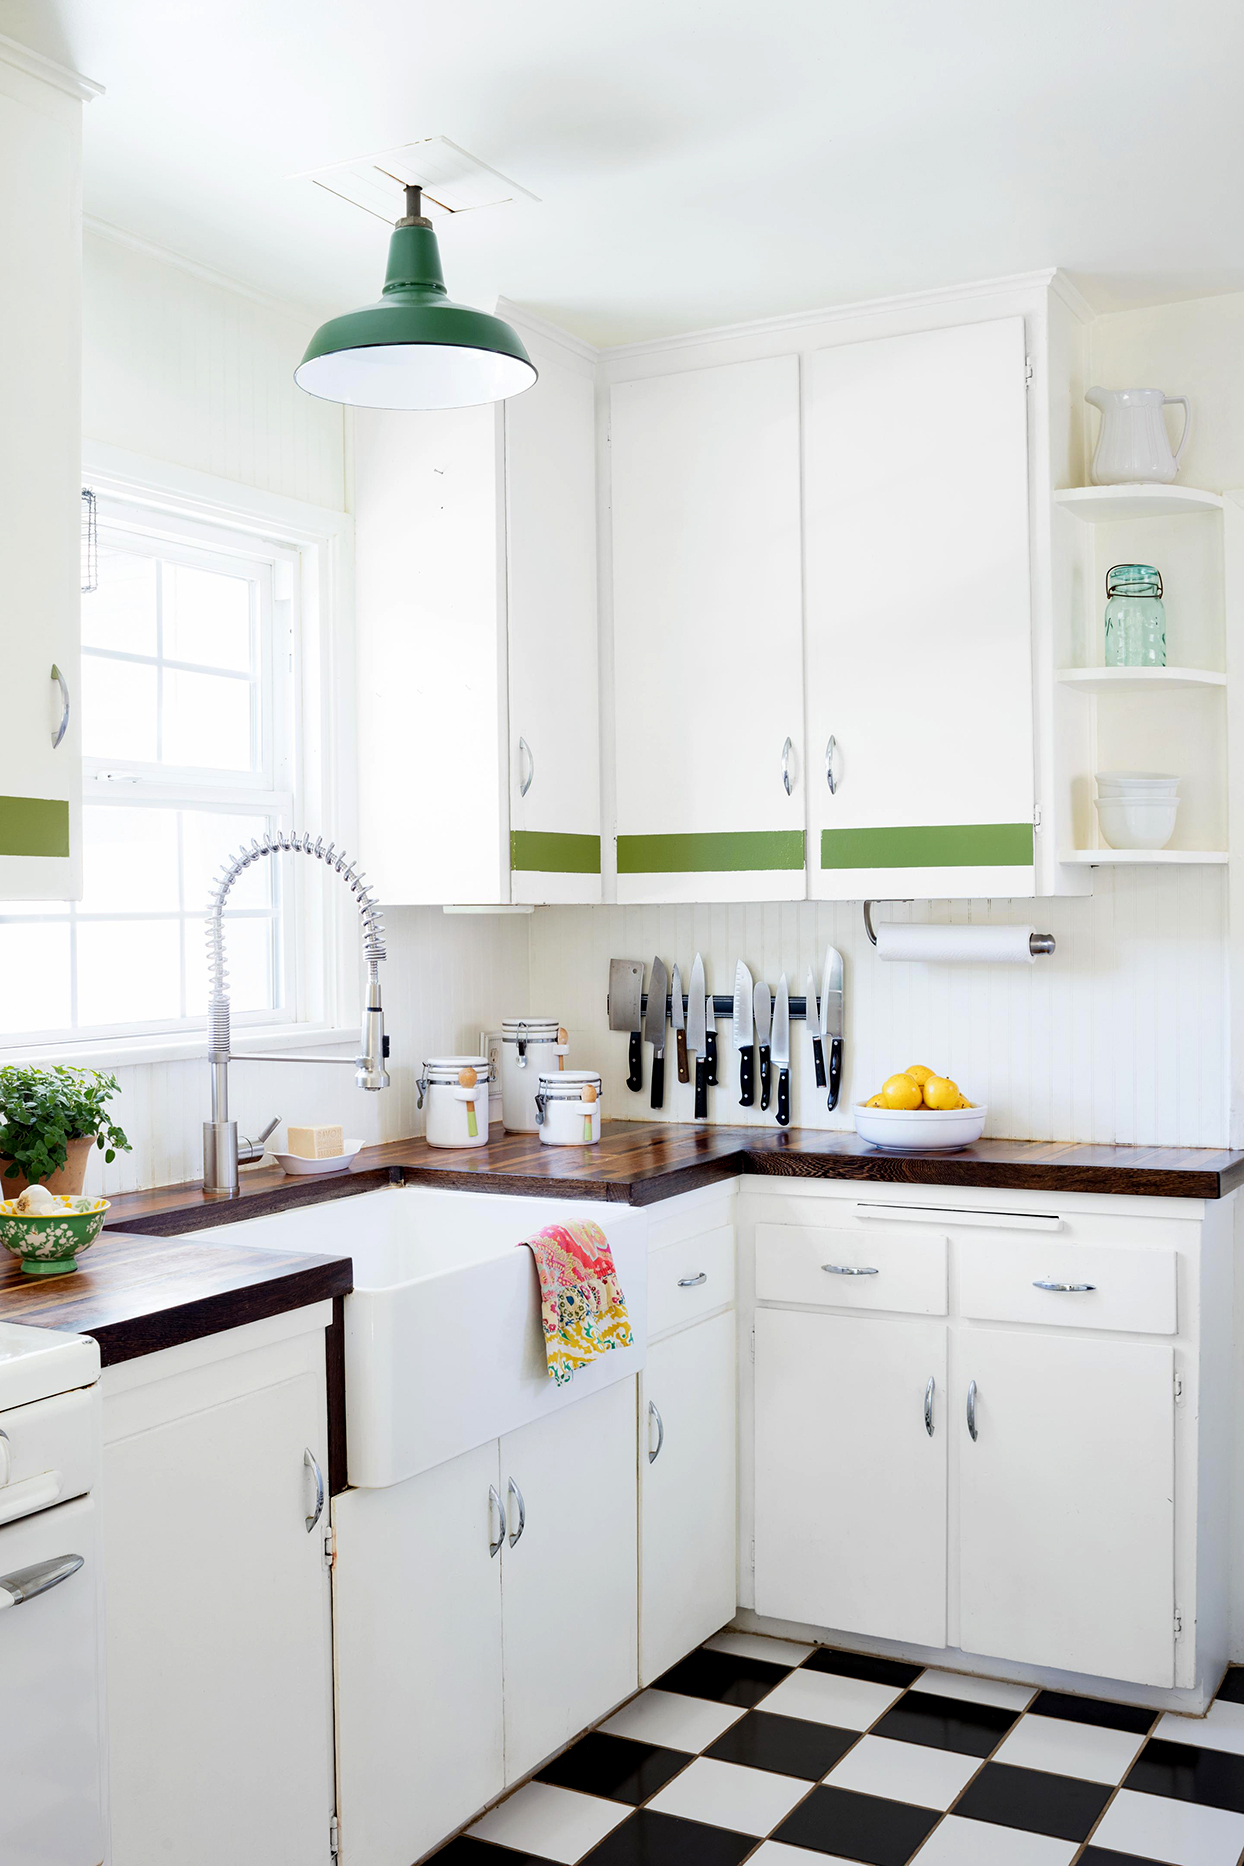 Kitchen with checkered floor and white cabinets